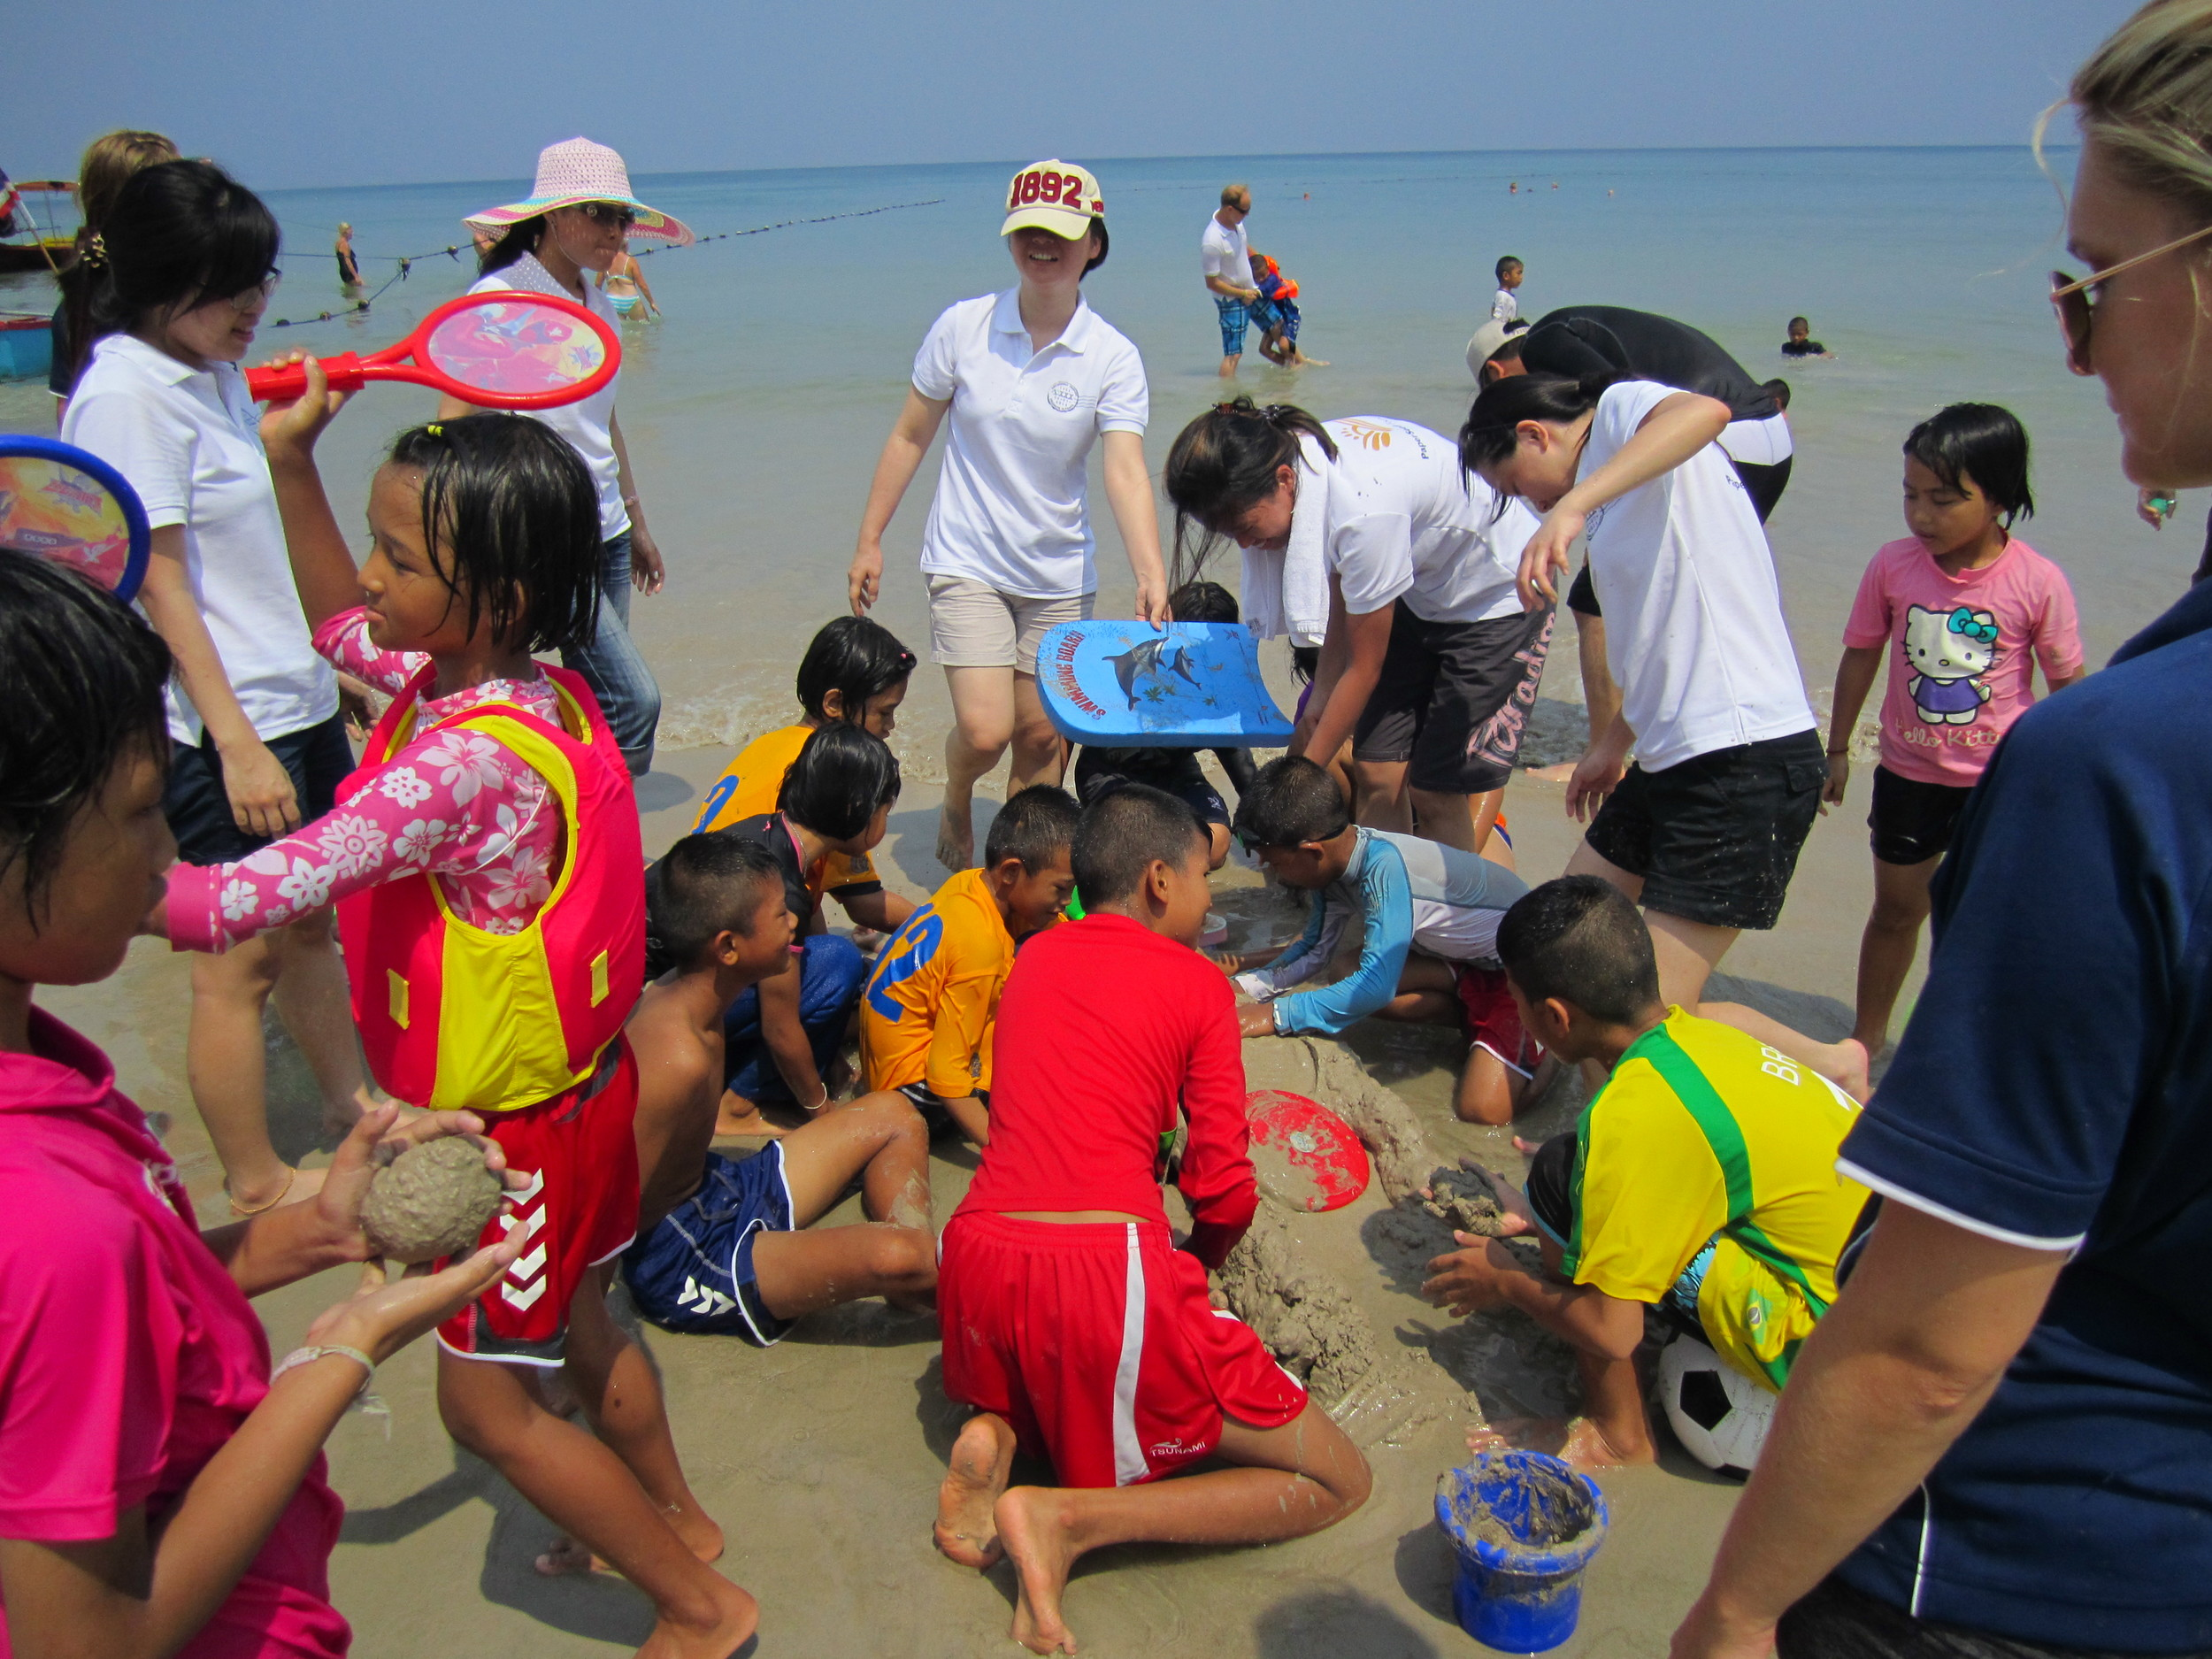 Enjoying time at the beach with the children of the Coconut Club after-school and residential program in Phuket, Thailand